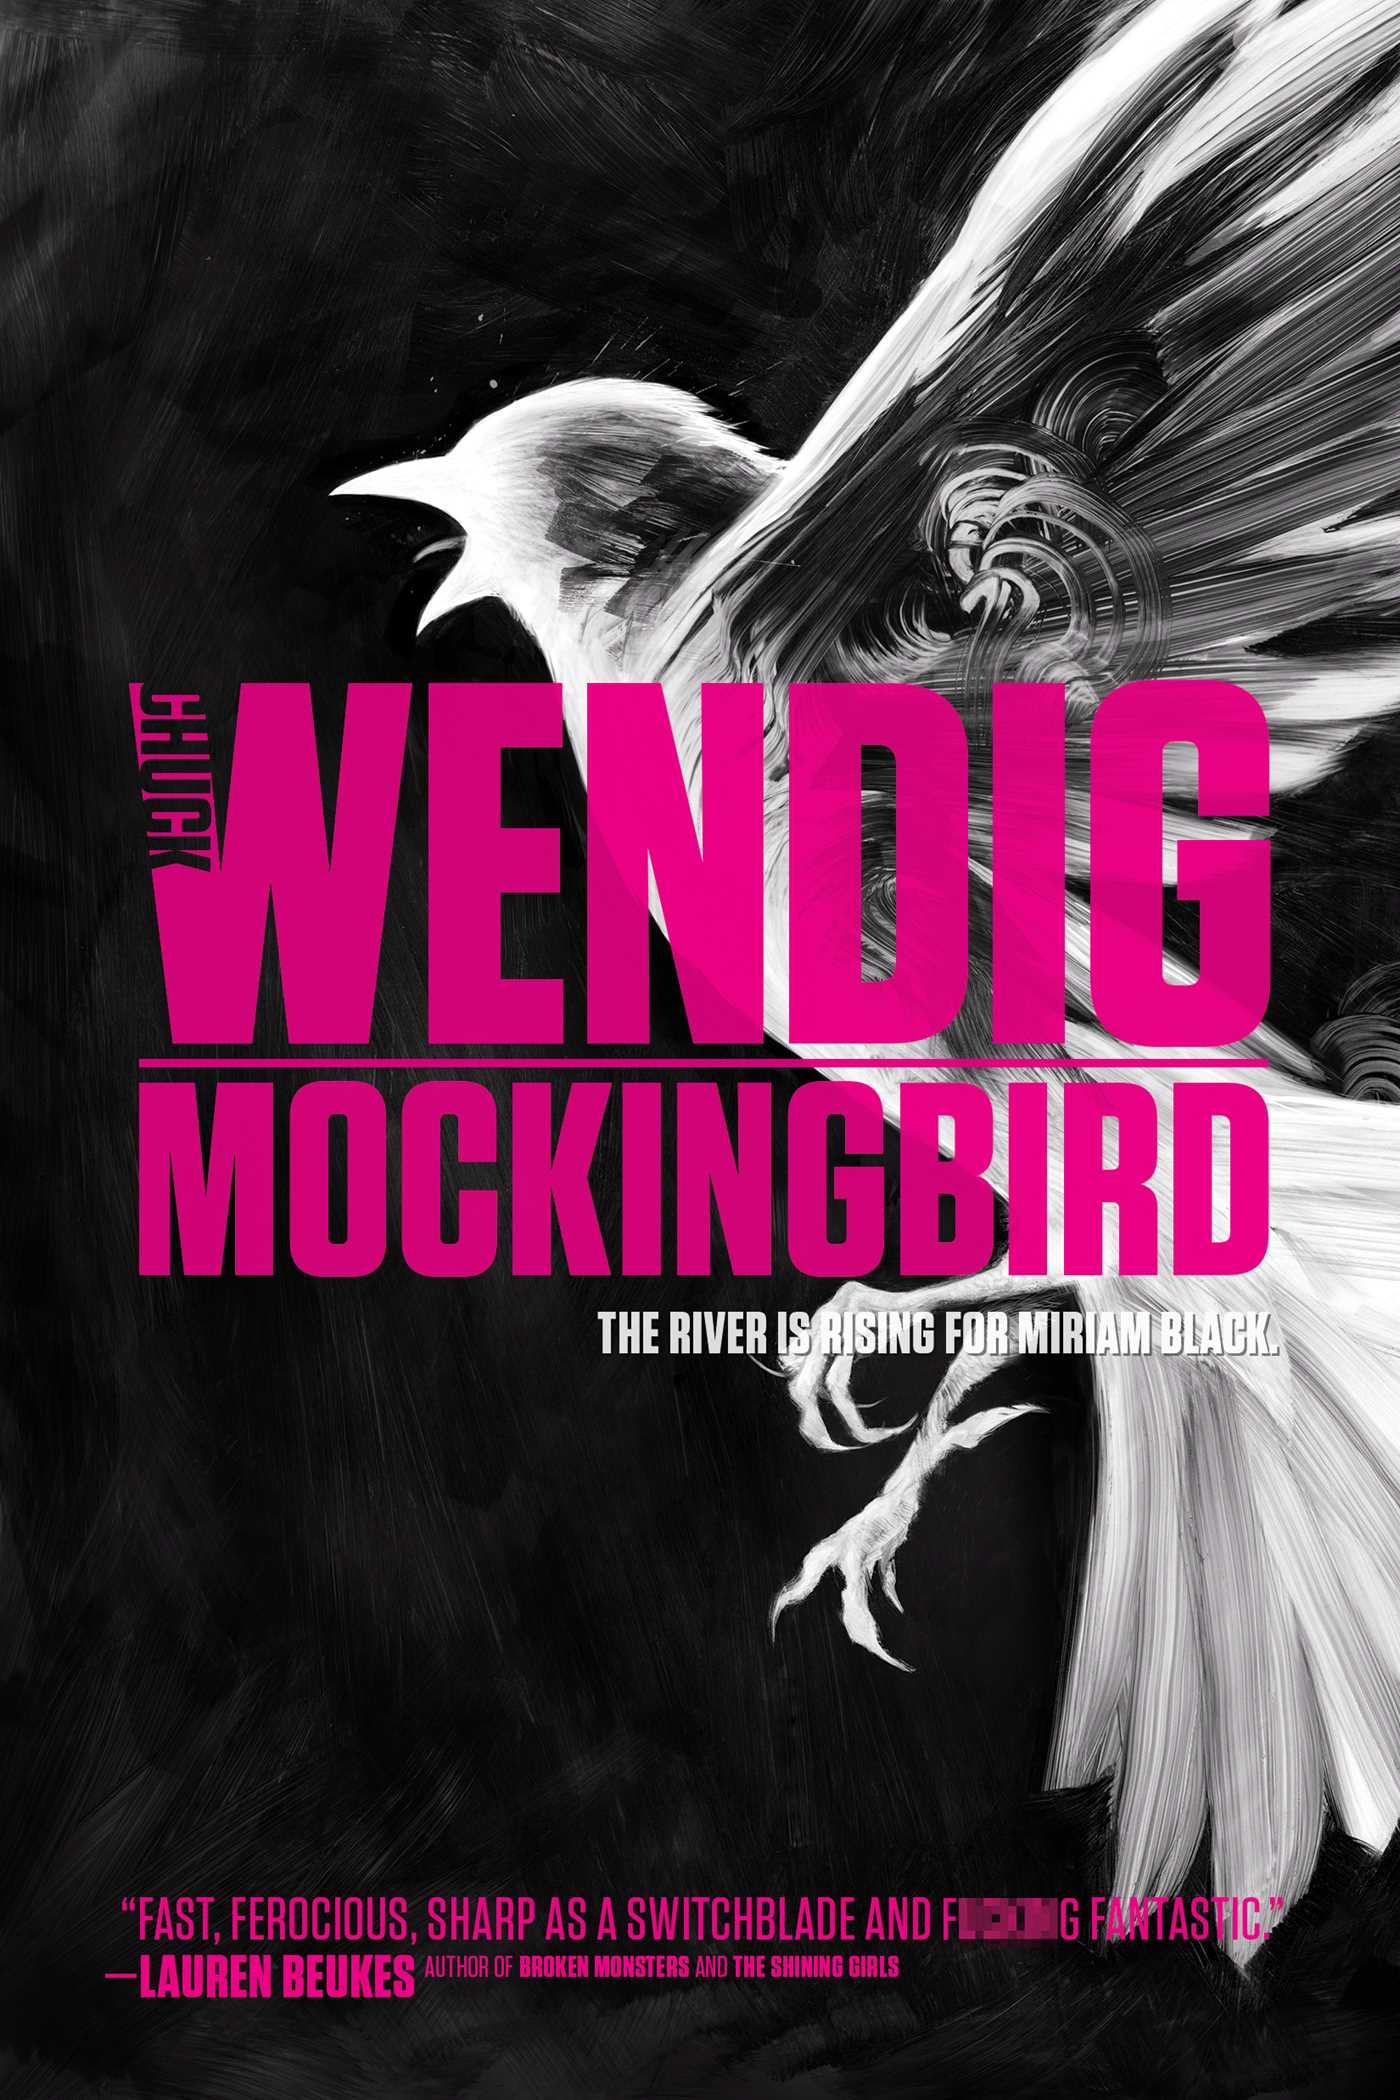 Mockingbird 9781481448673 hr